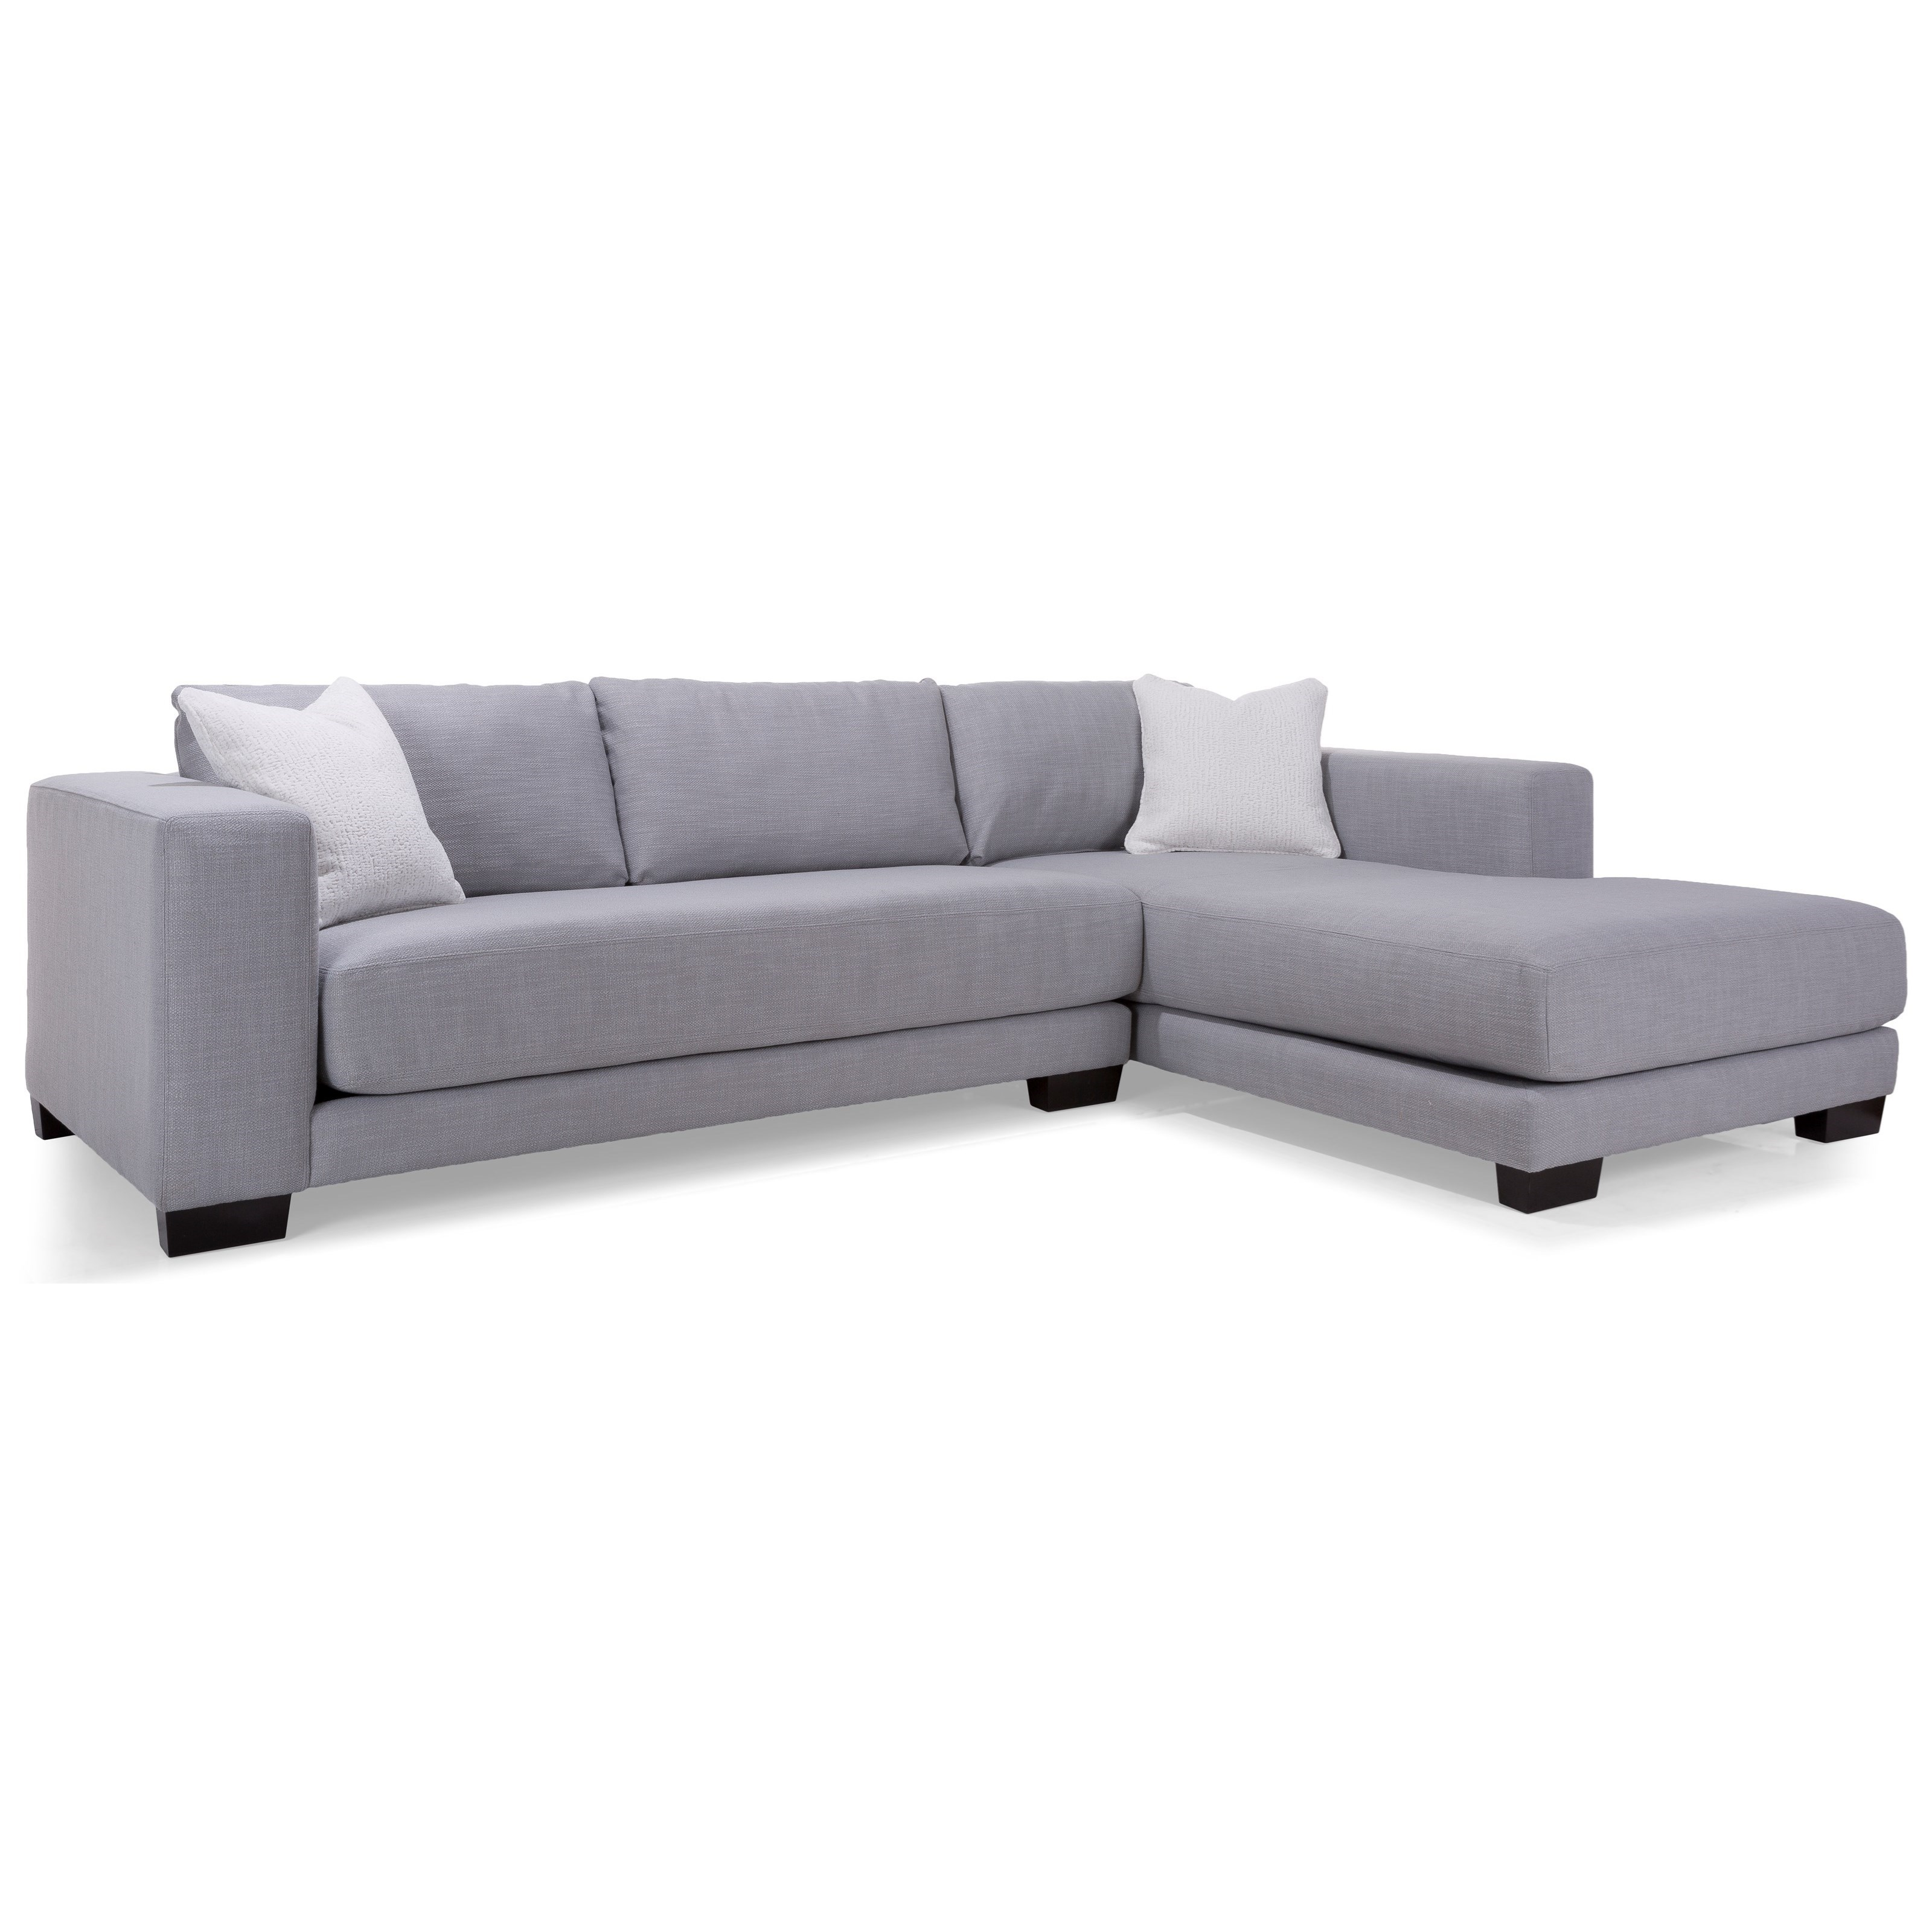 2802 Sectional Sofa by Decor-Rest at Upper Room Home Furnishings